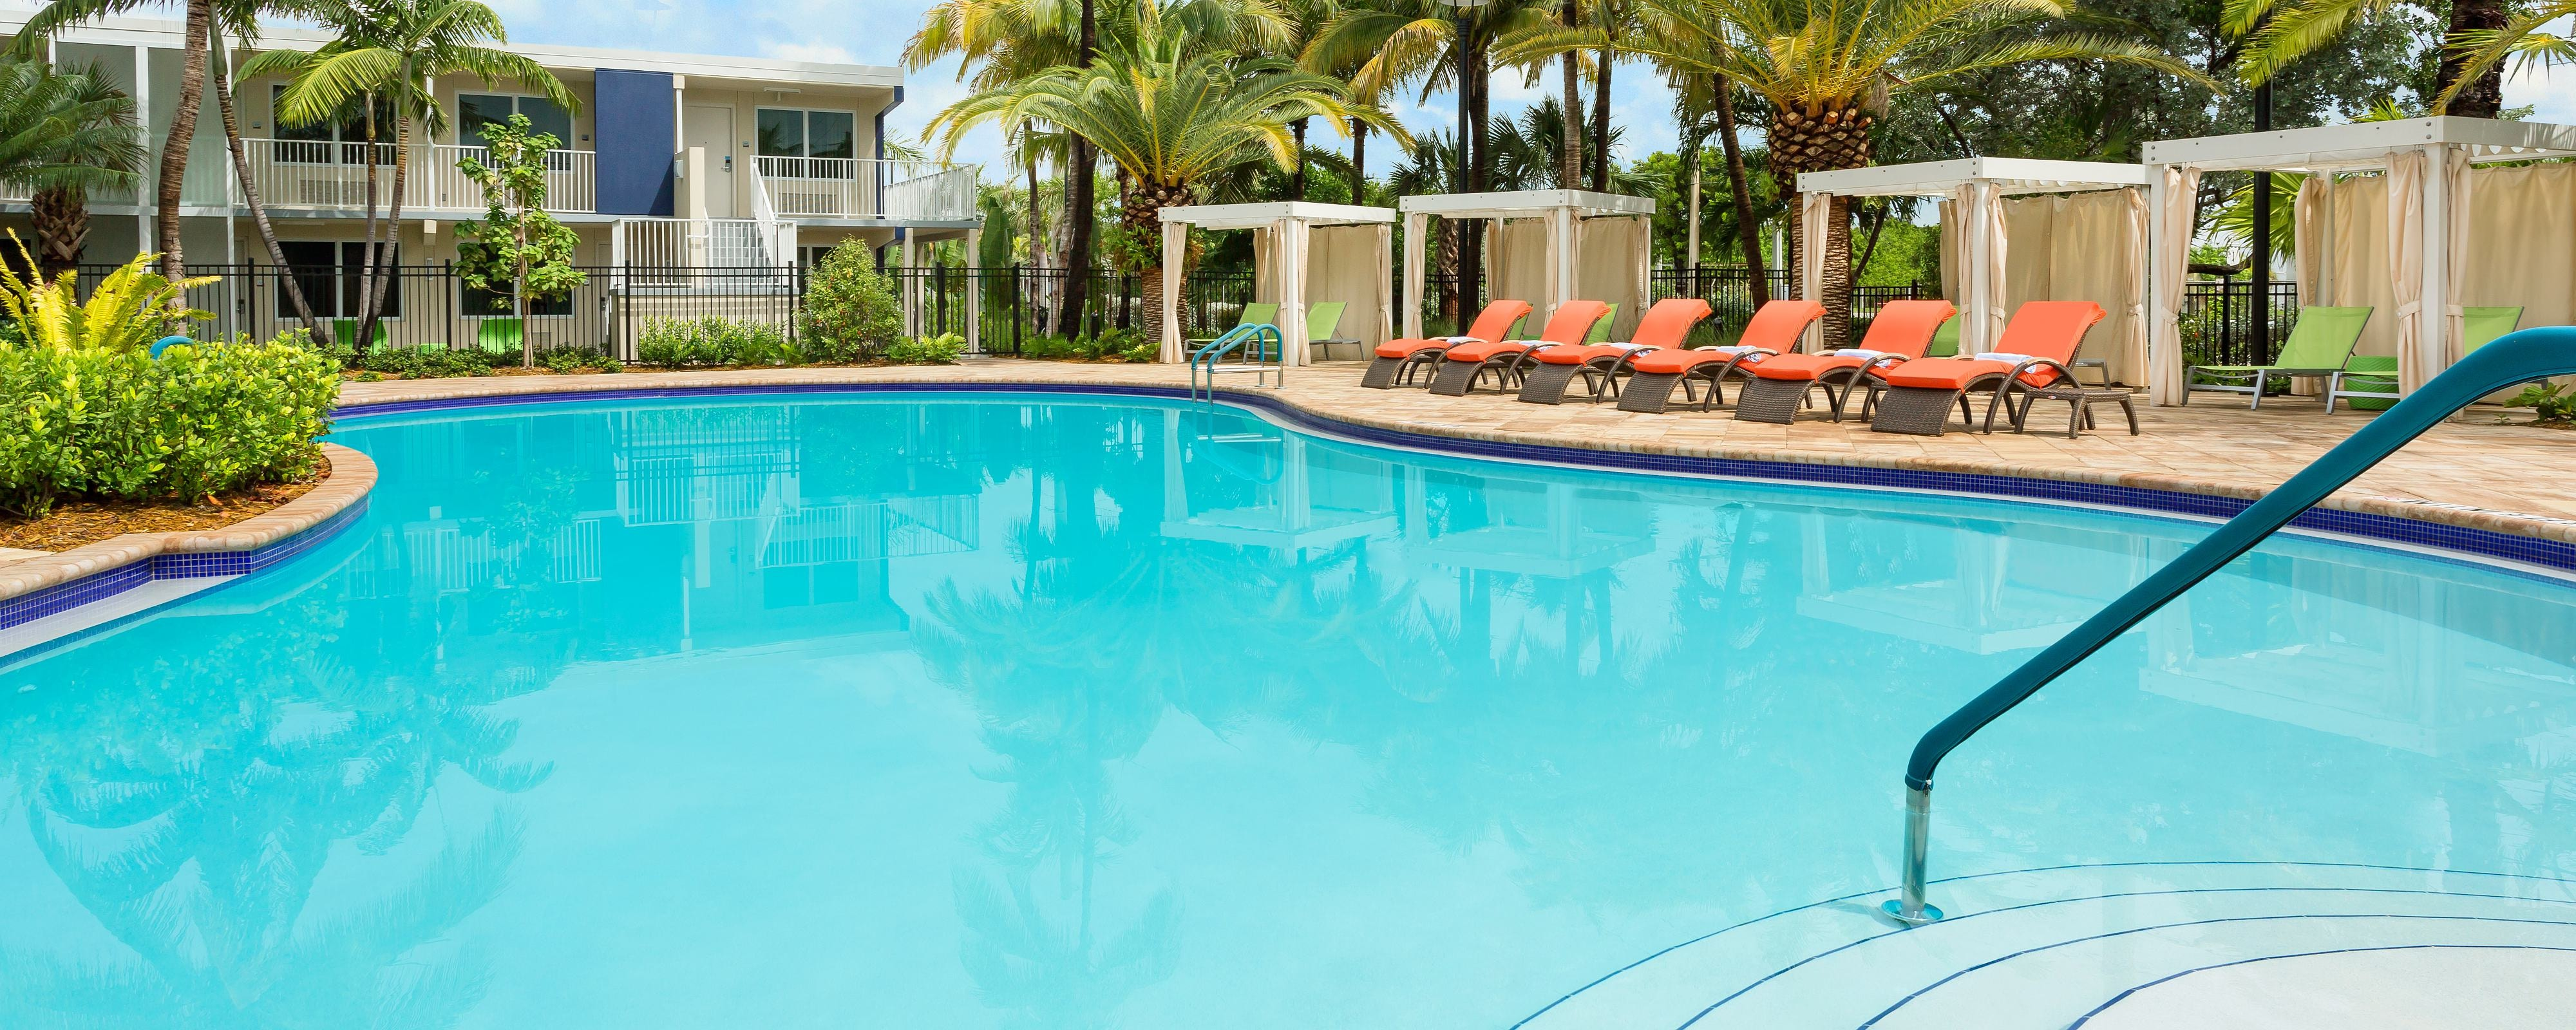 Fairfield Inn & Suites Key West at The Keys Collection -  outdoor pool